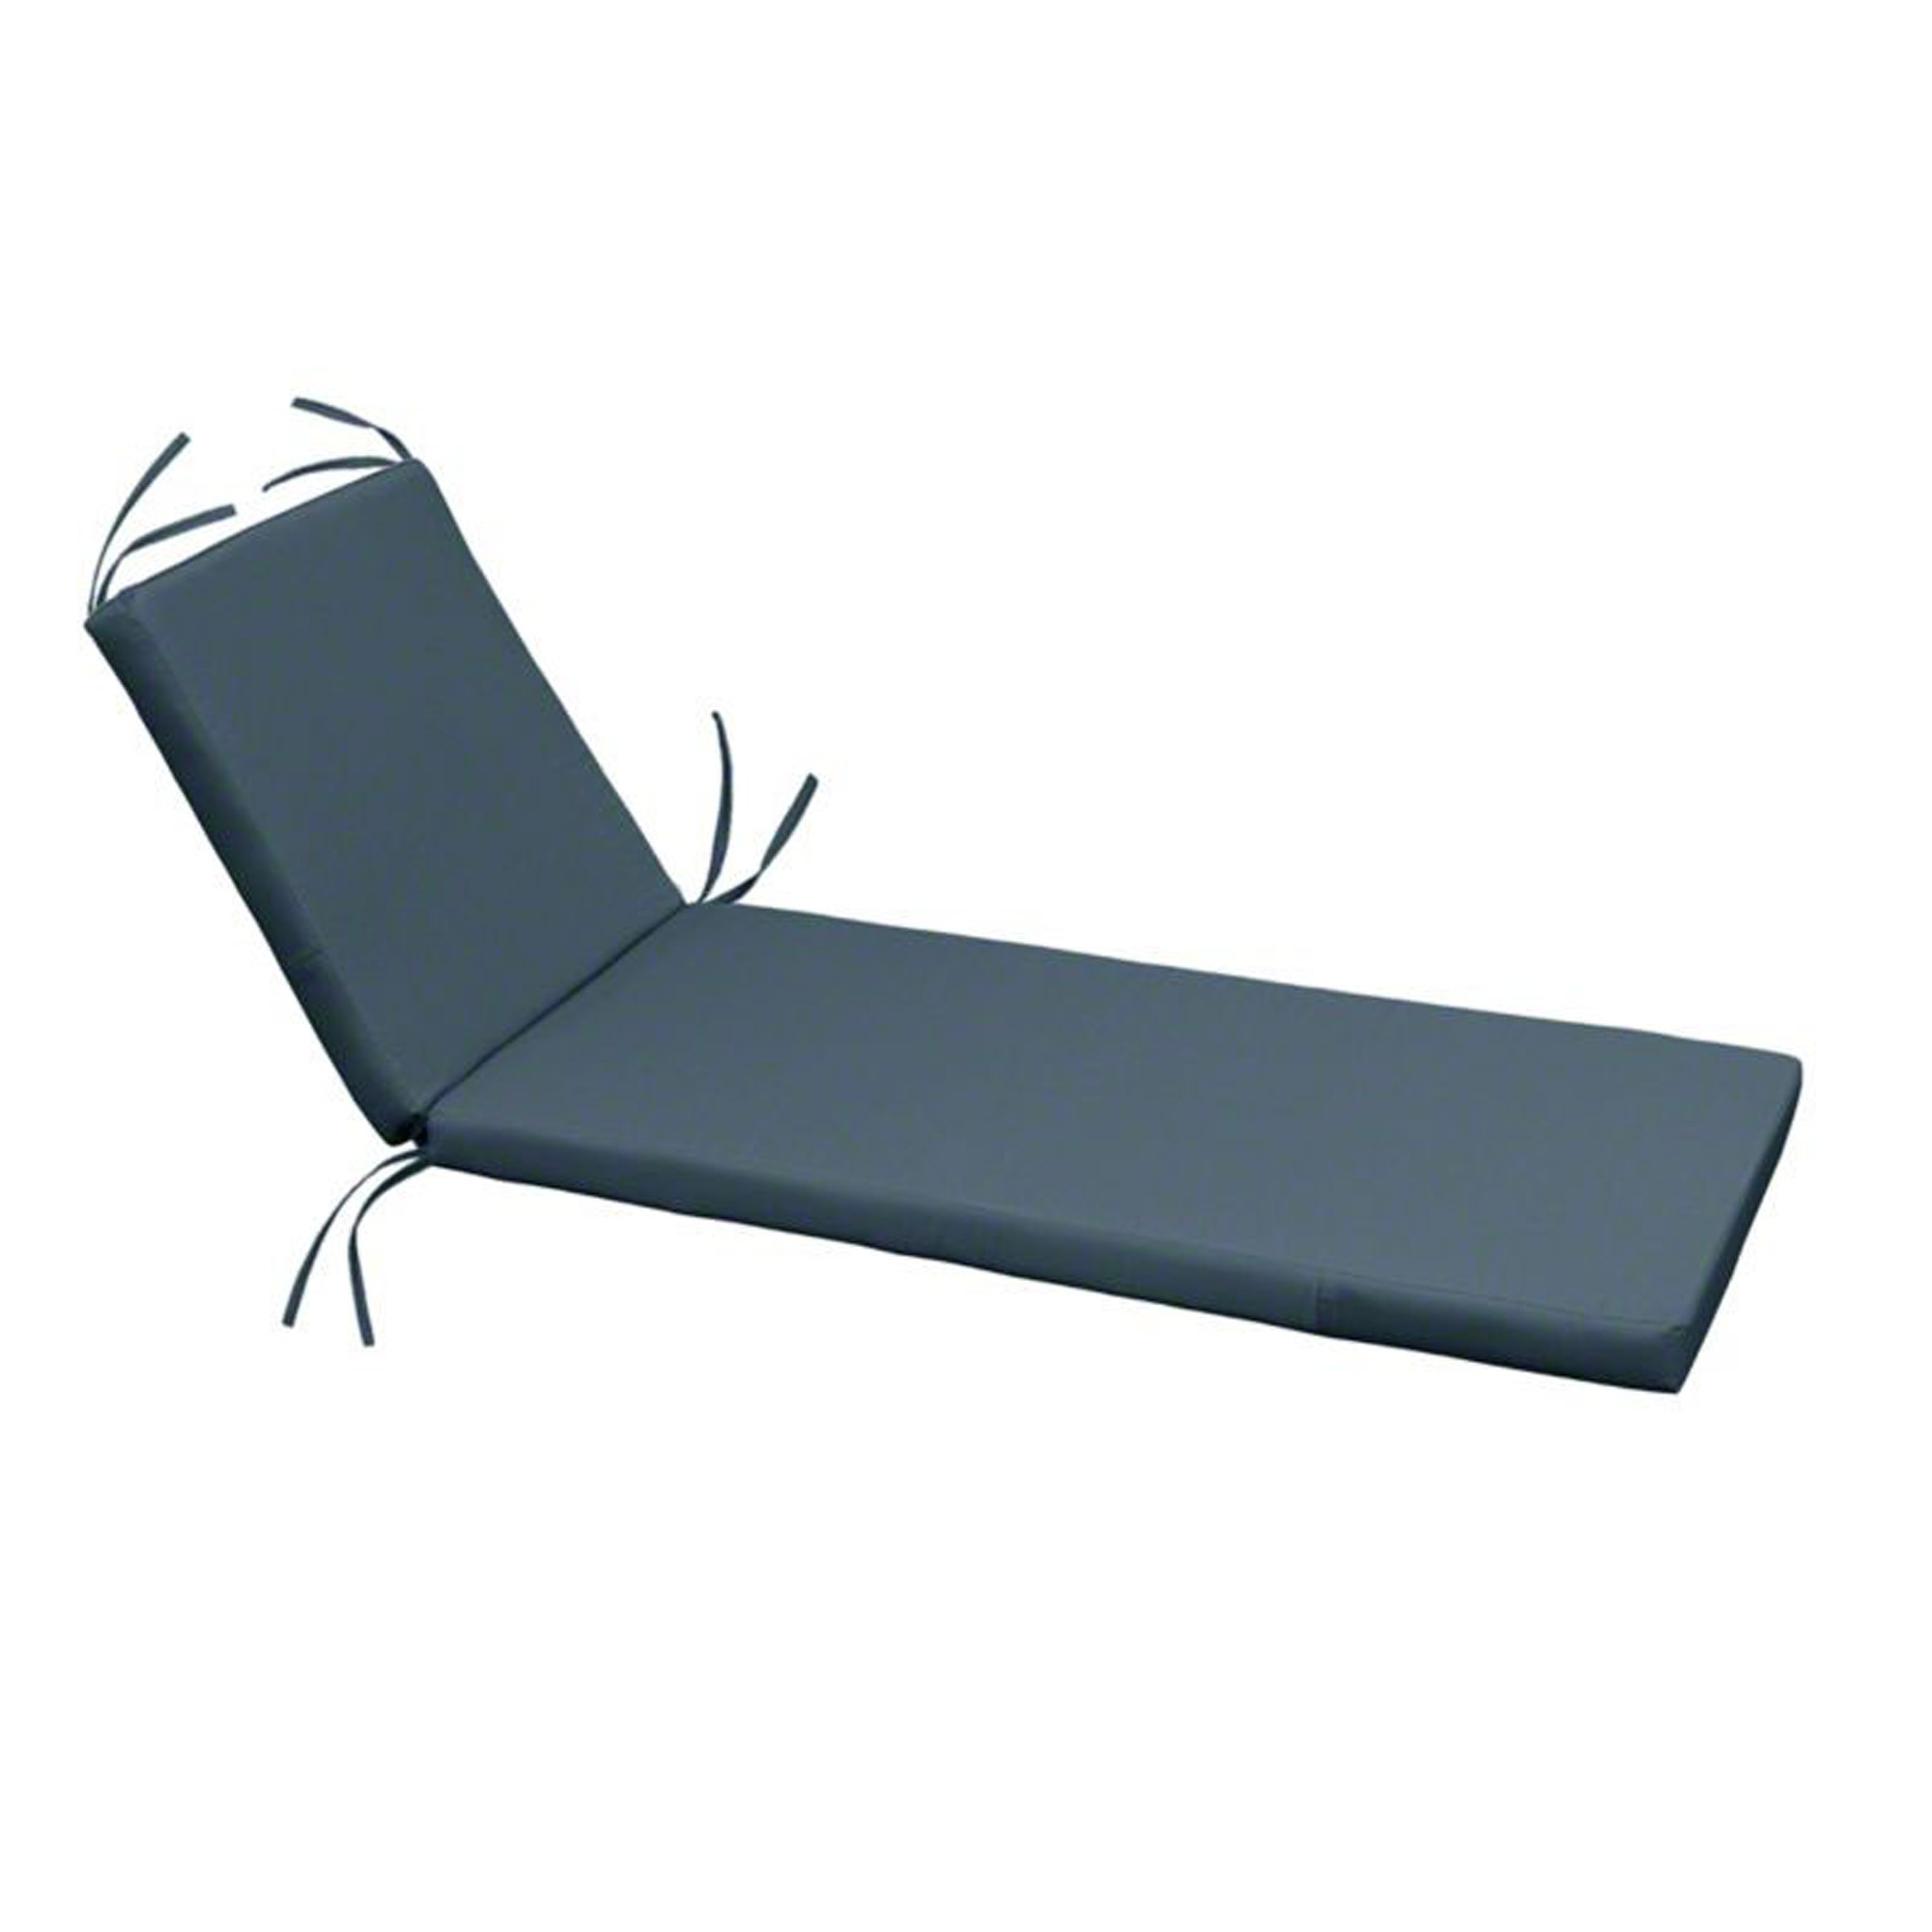 amazing sunbrella chaise lounge cushions with dark gray color